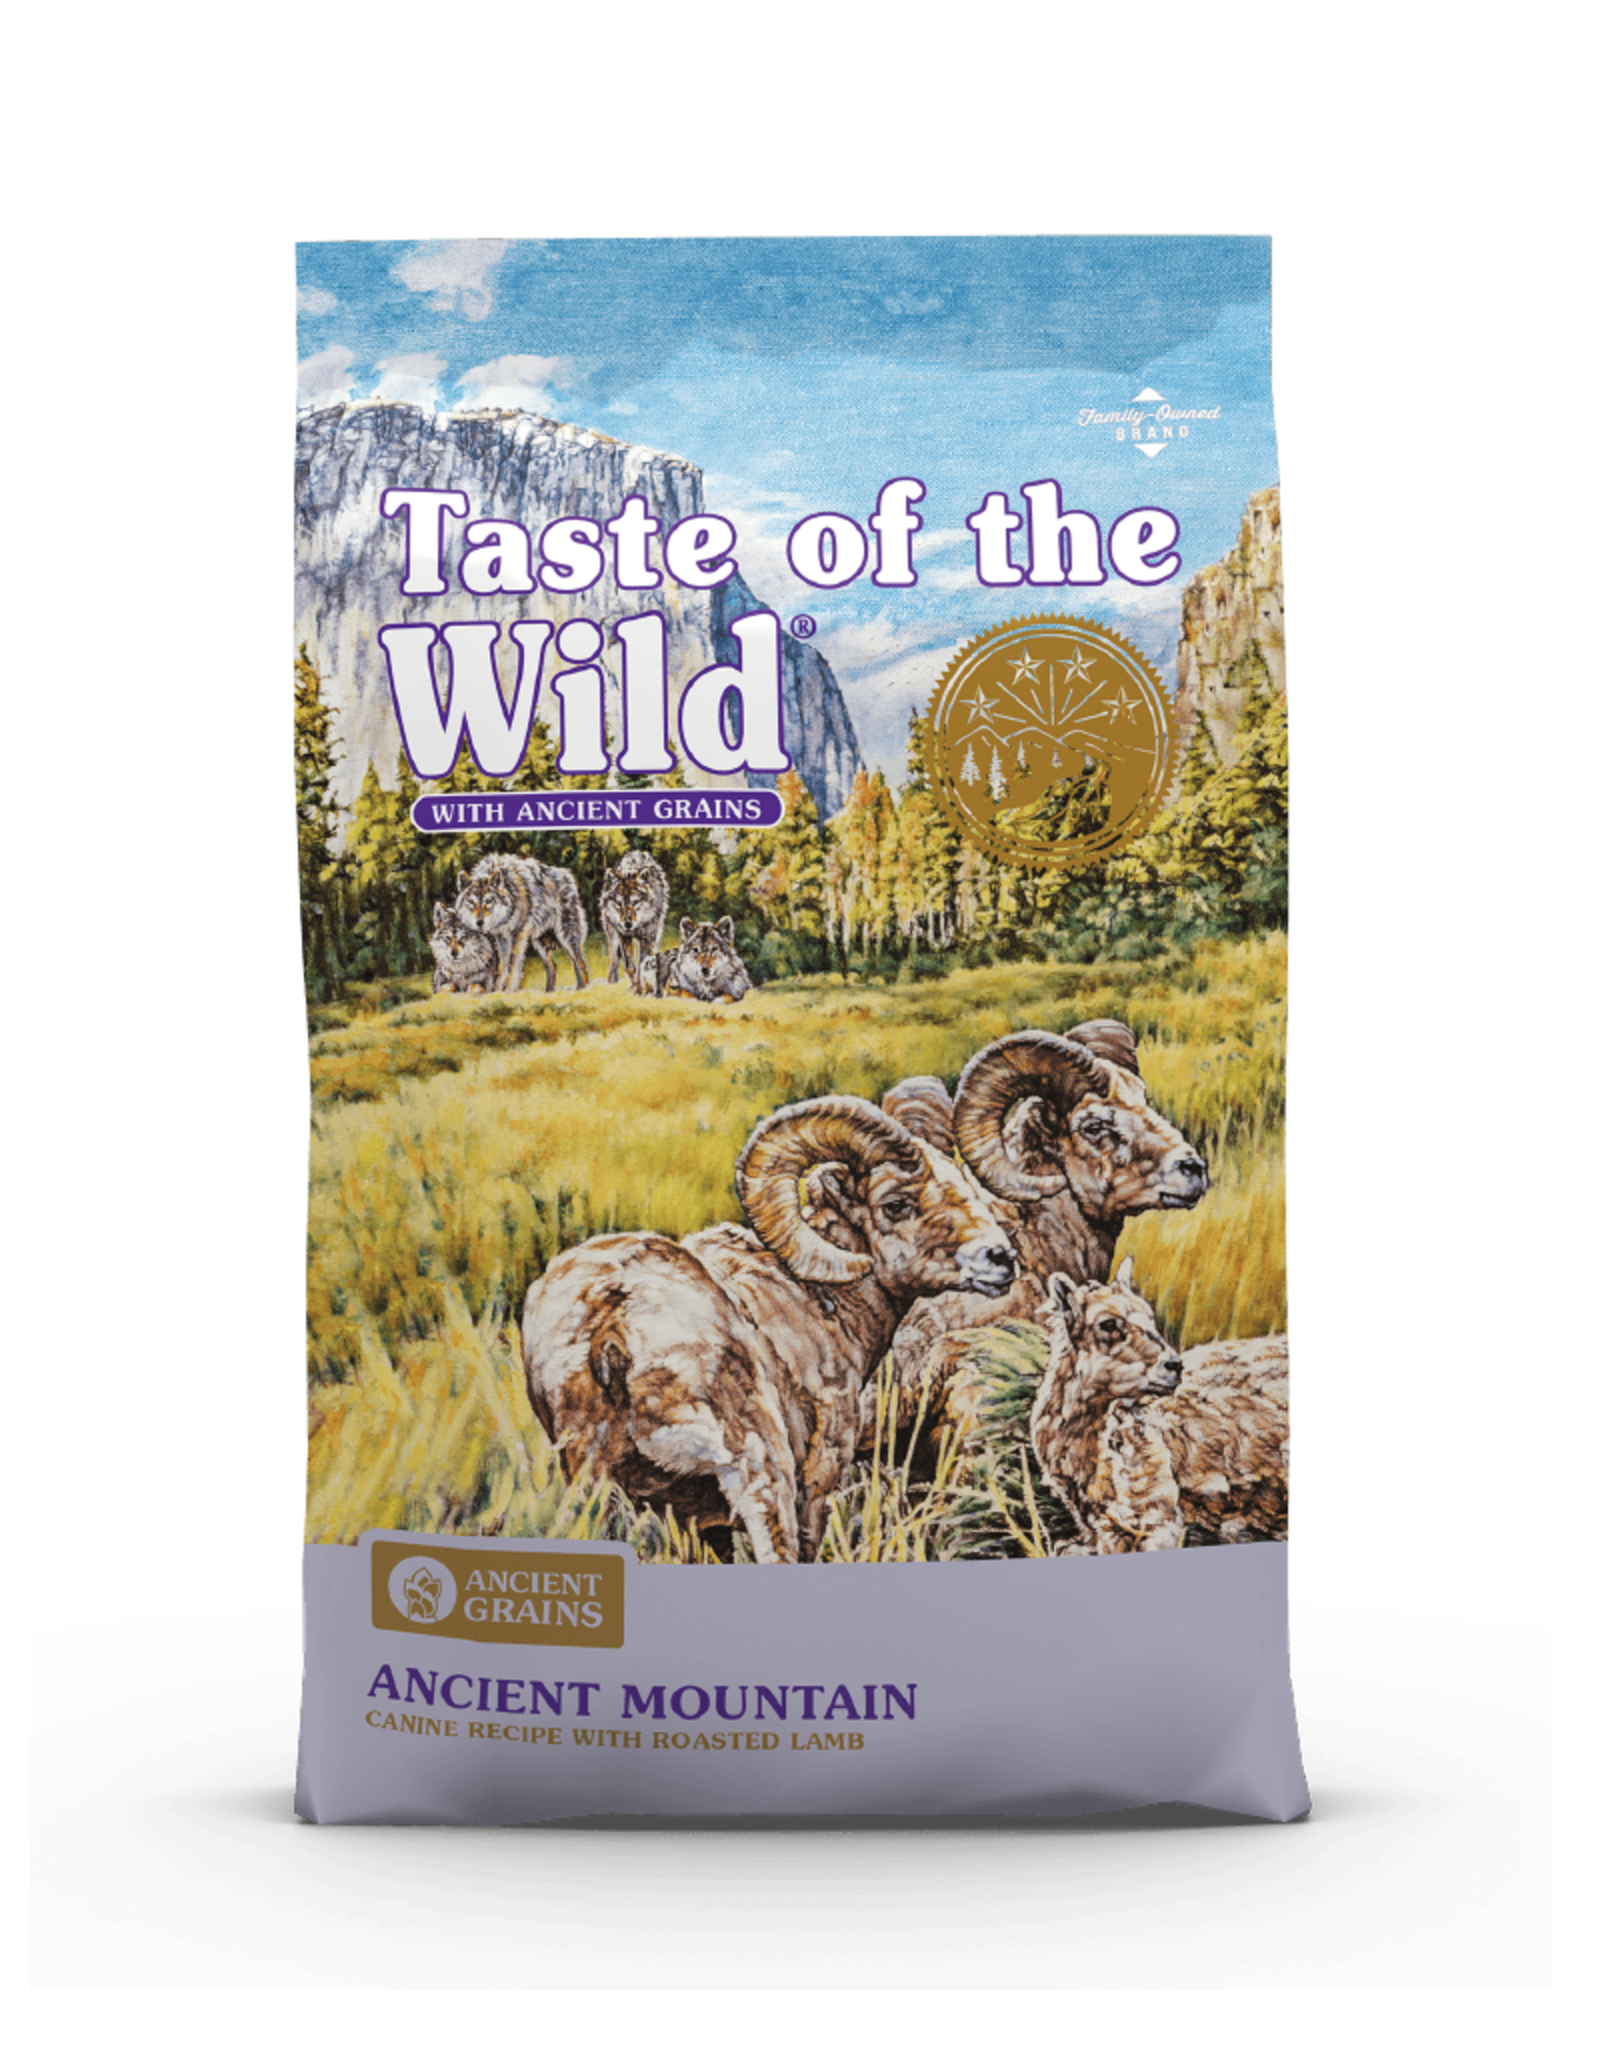 Taste of the Wild Taste of the Wild | Ancient Mountain Canine Recipe